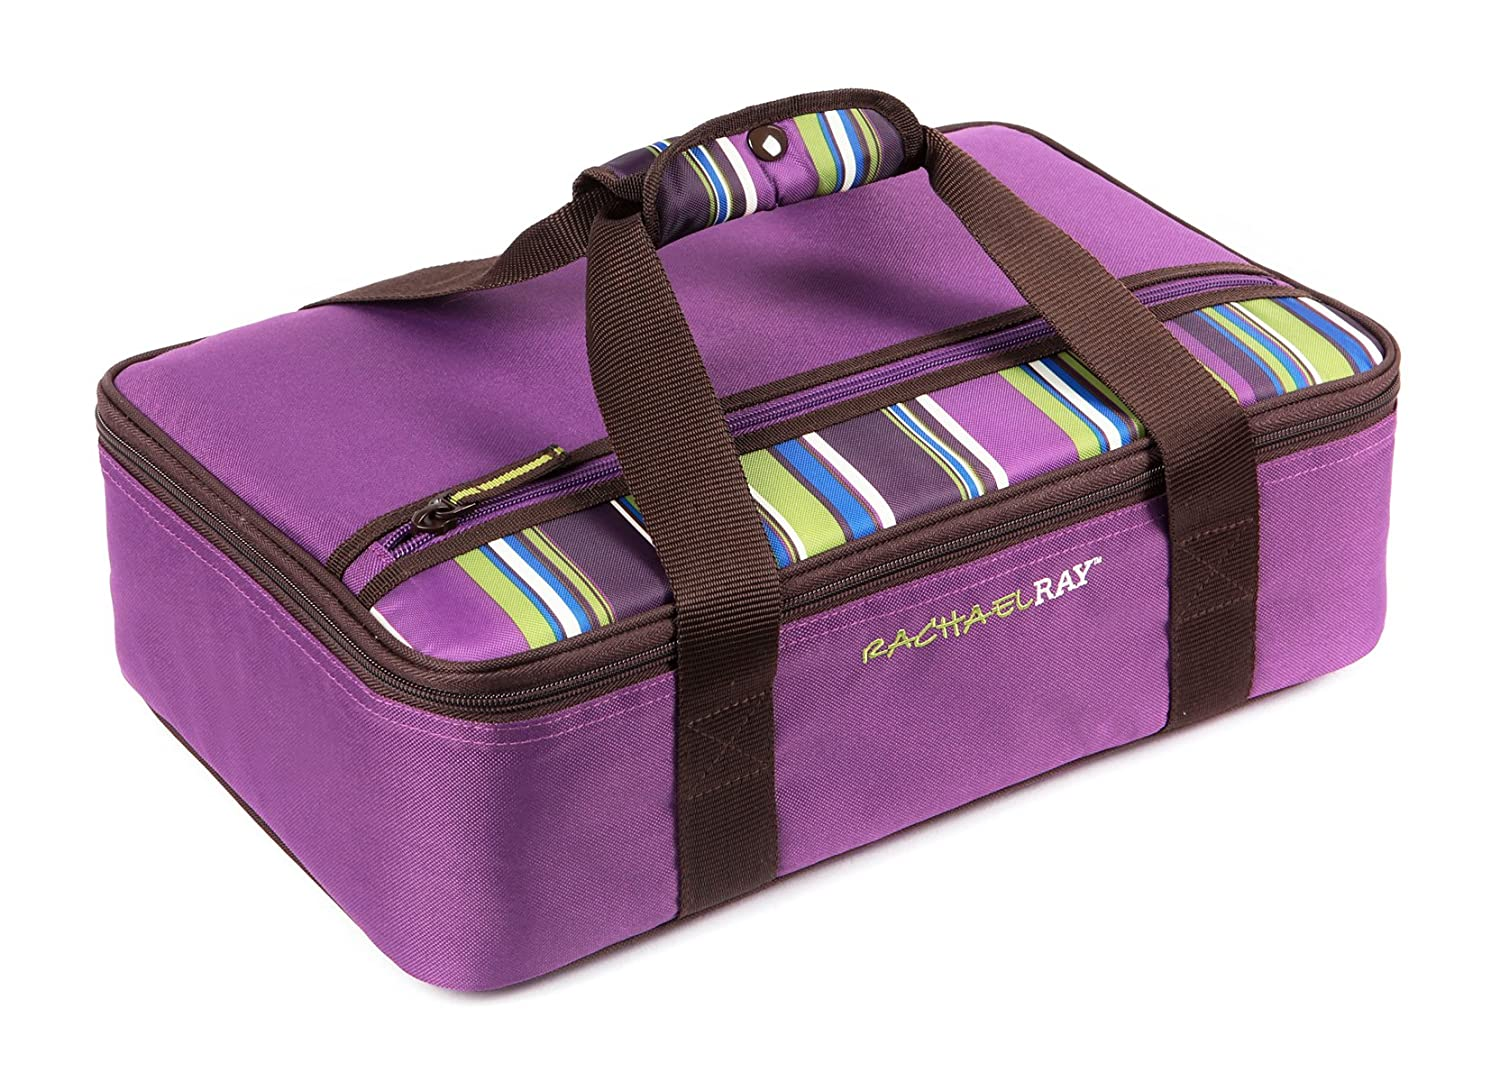 "Rachael Ray Lasagna Lugger, Insulated Casserole Carrier for Potluck Parties, Picnics, Tailgates - Fits 9""x13"" Baking Dish, Purple"